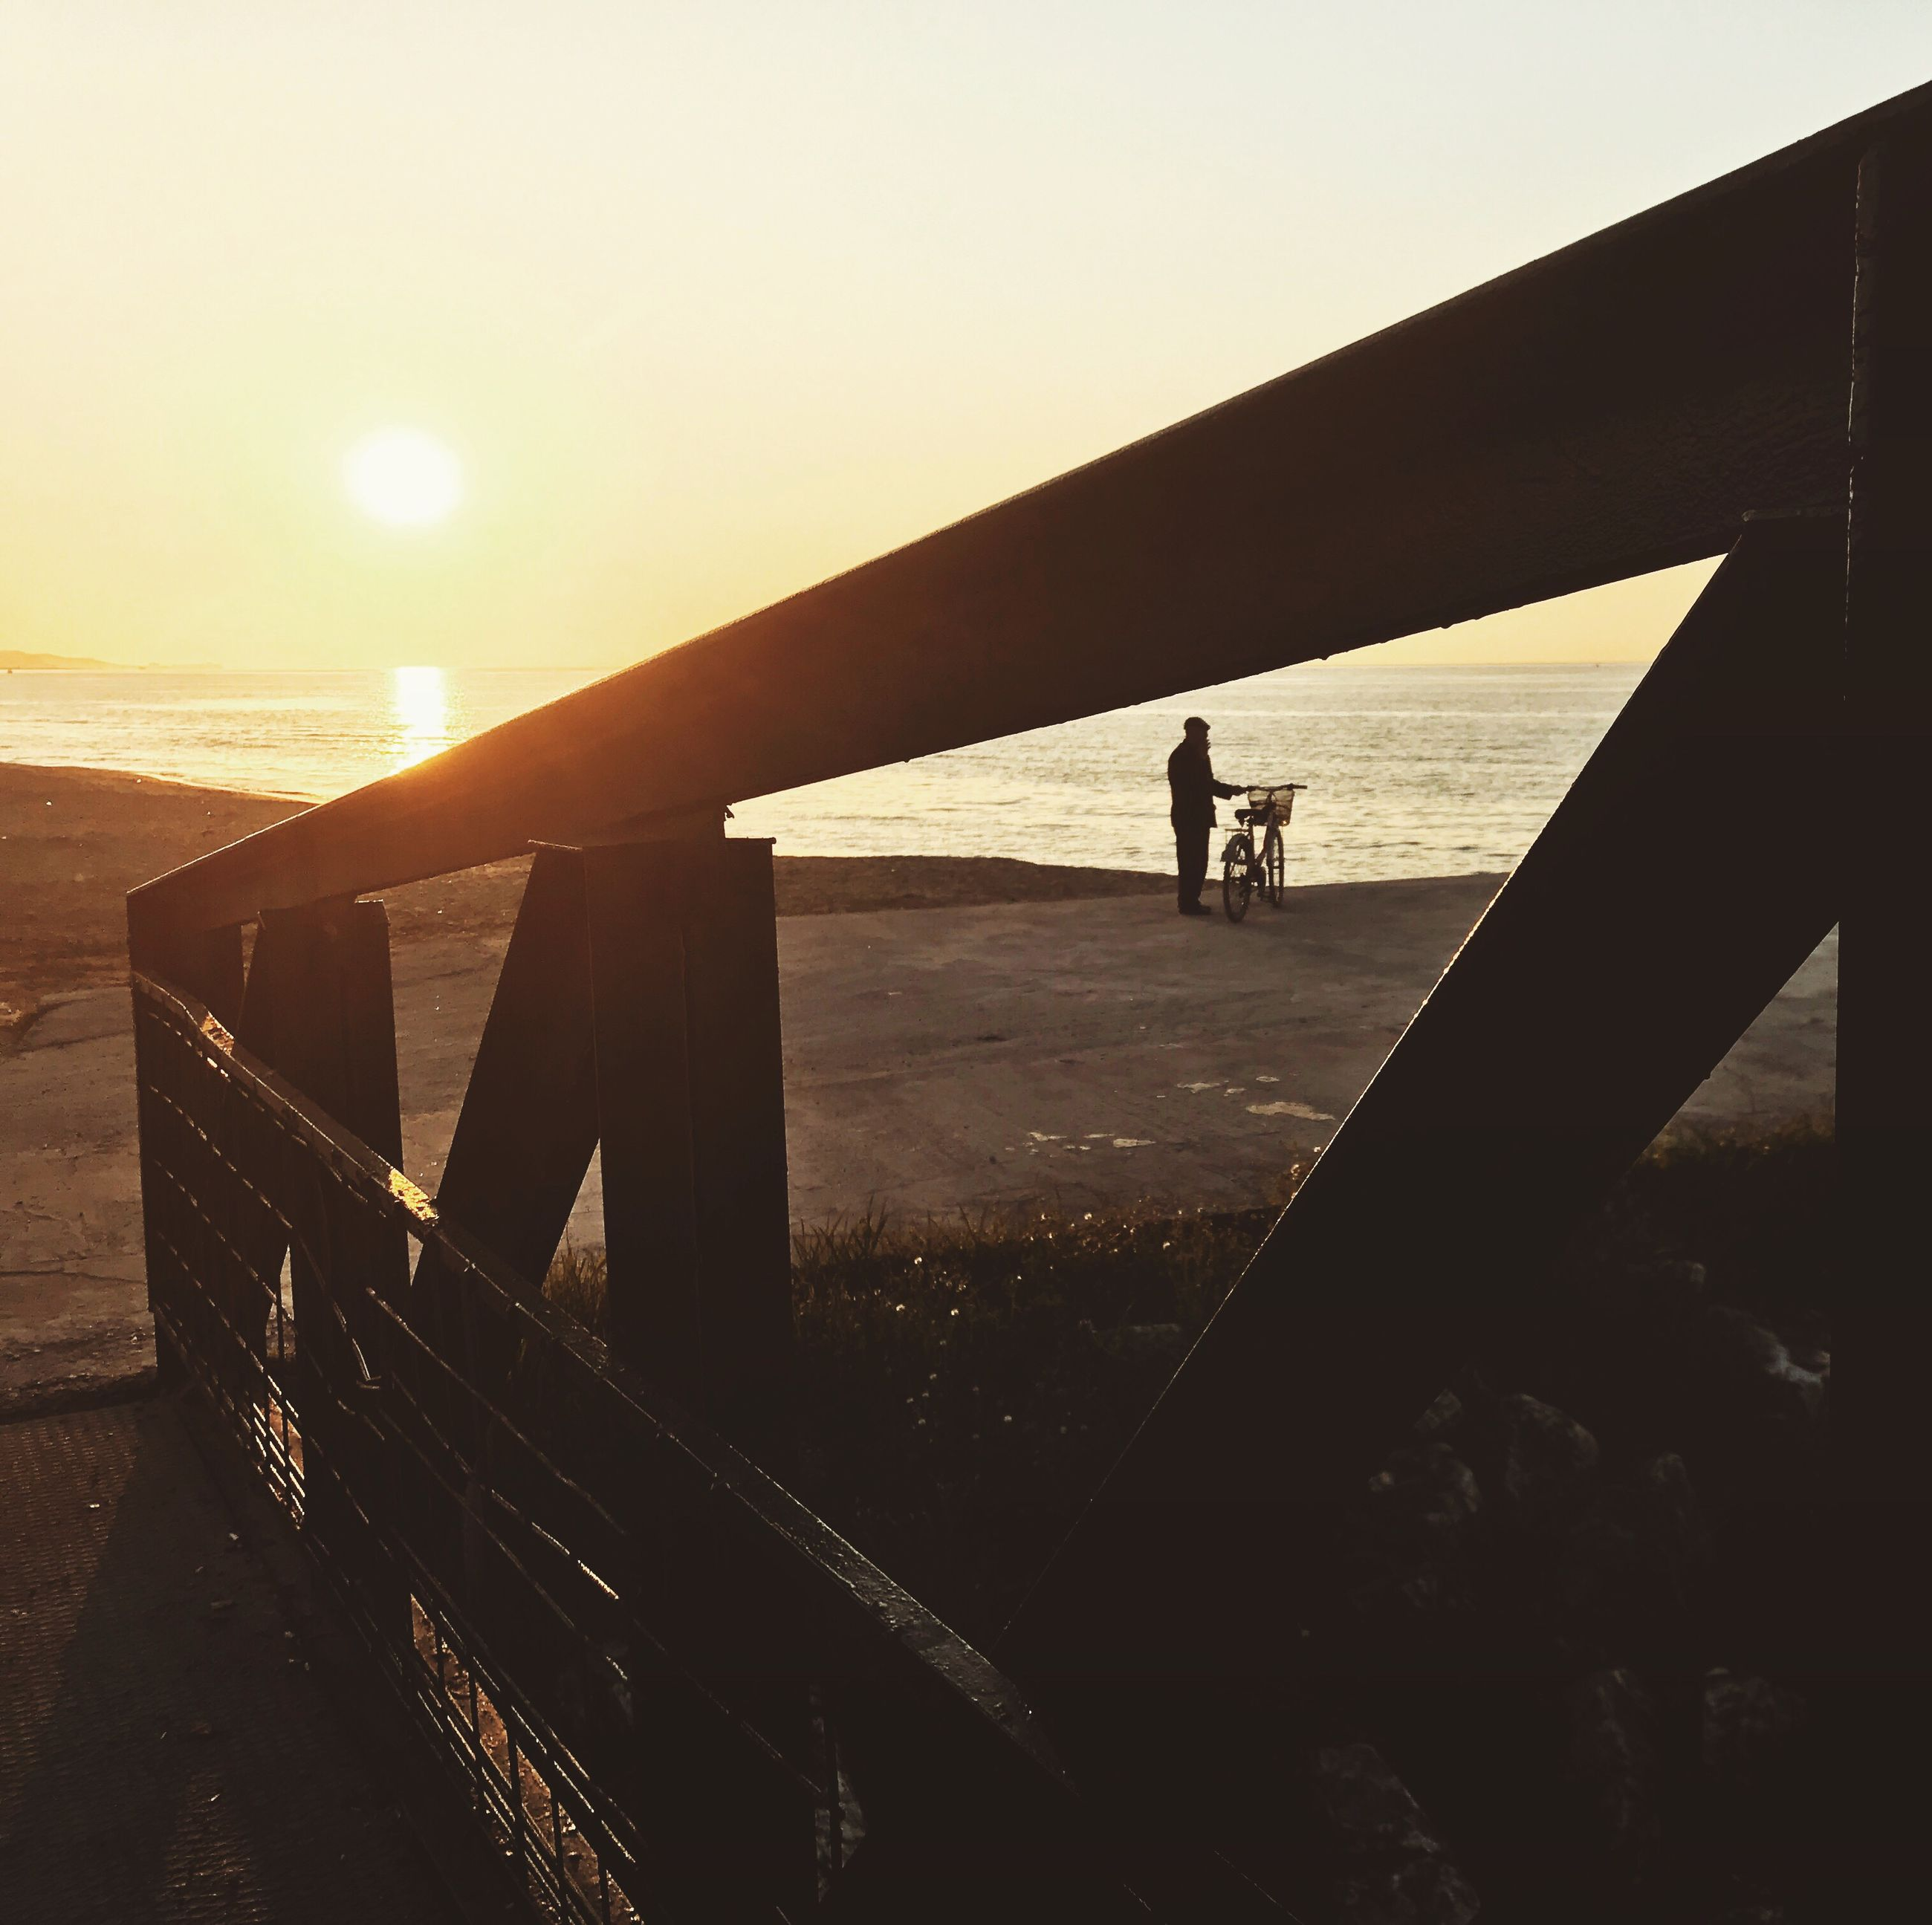 leisure activity, real people, lifestyles, sunset, silhouette, sunlight, railing, full length, men, outdoors, skill, sky, one person, sea, friendship, day, people, adult